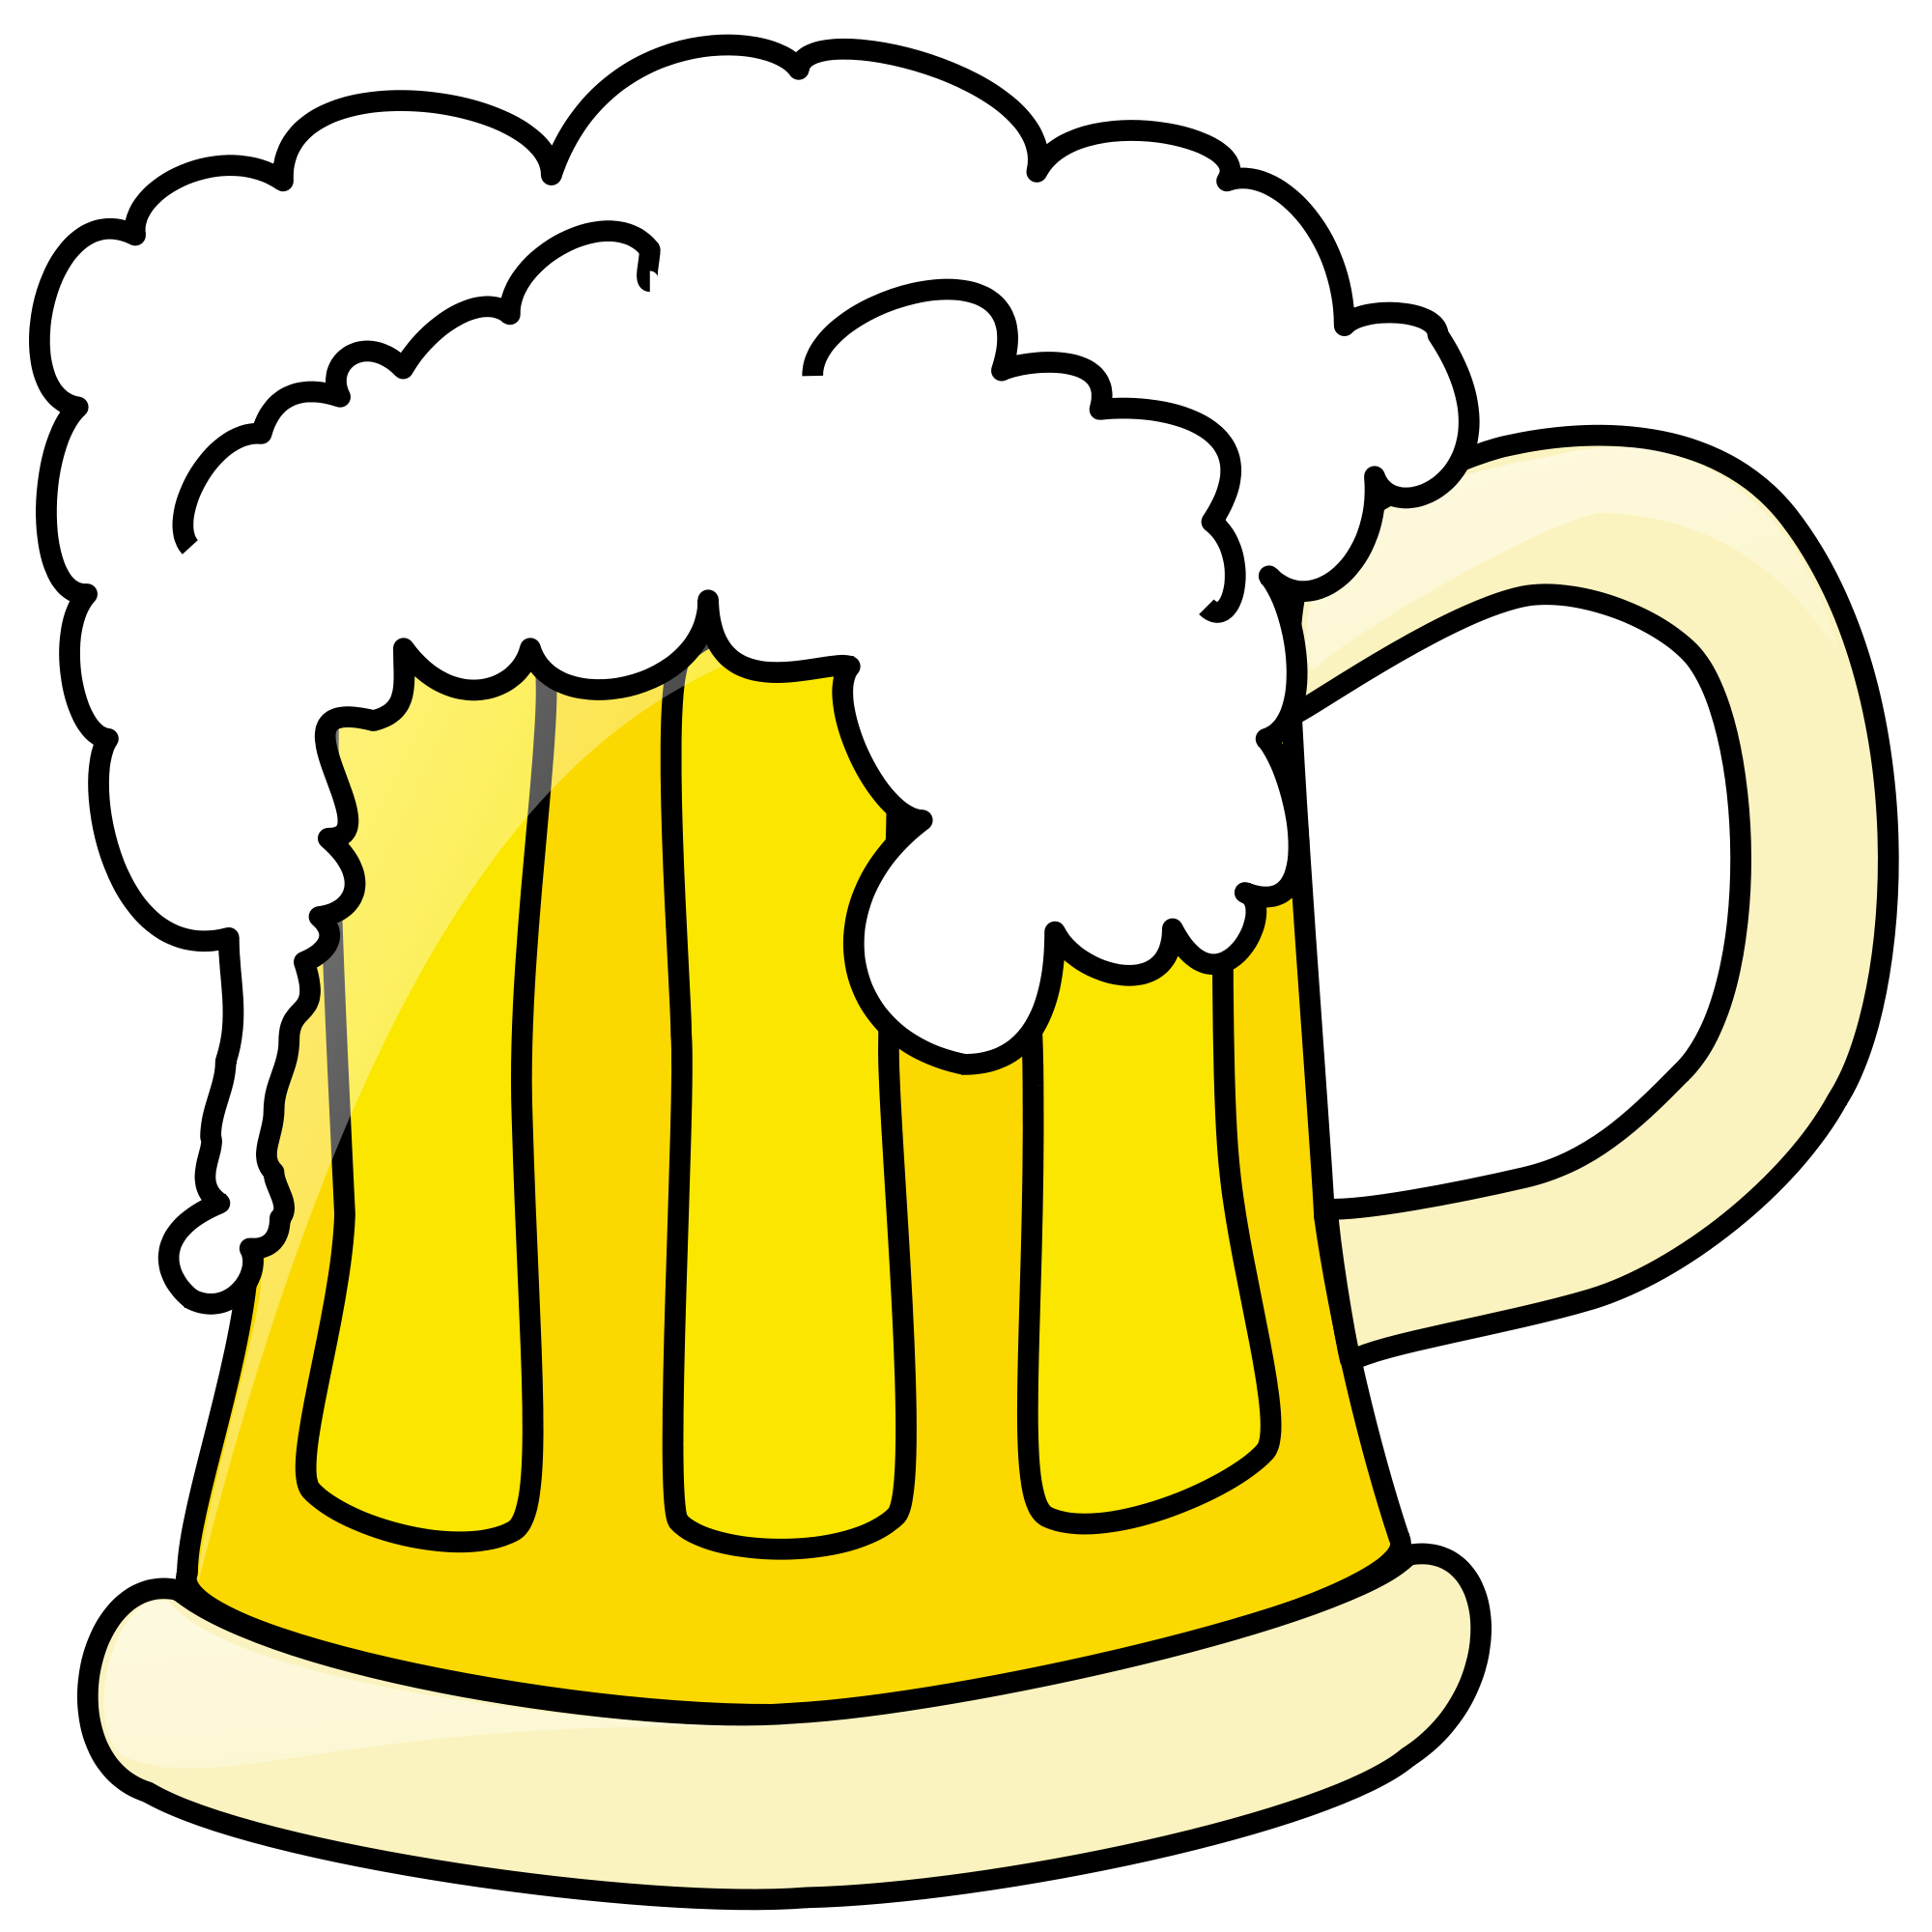 Beer clipart file. Managing the effects of